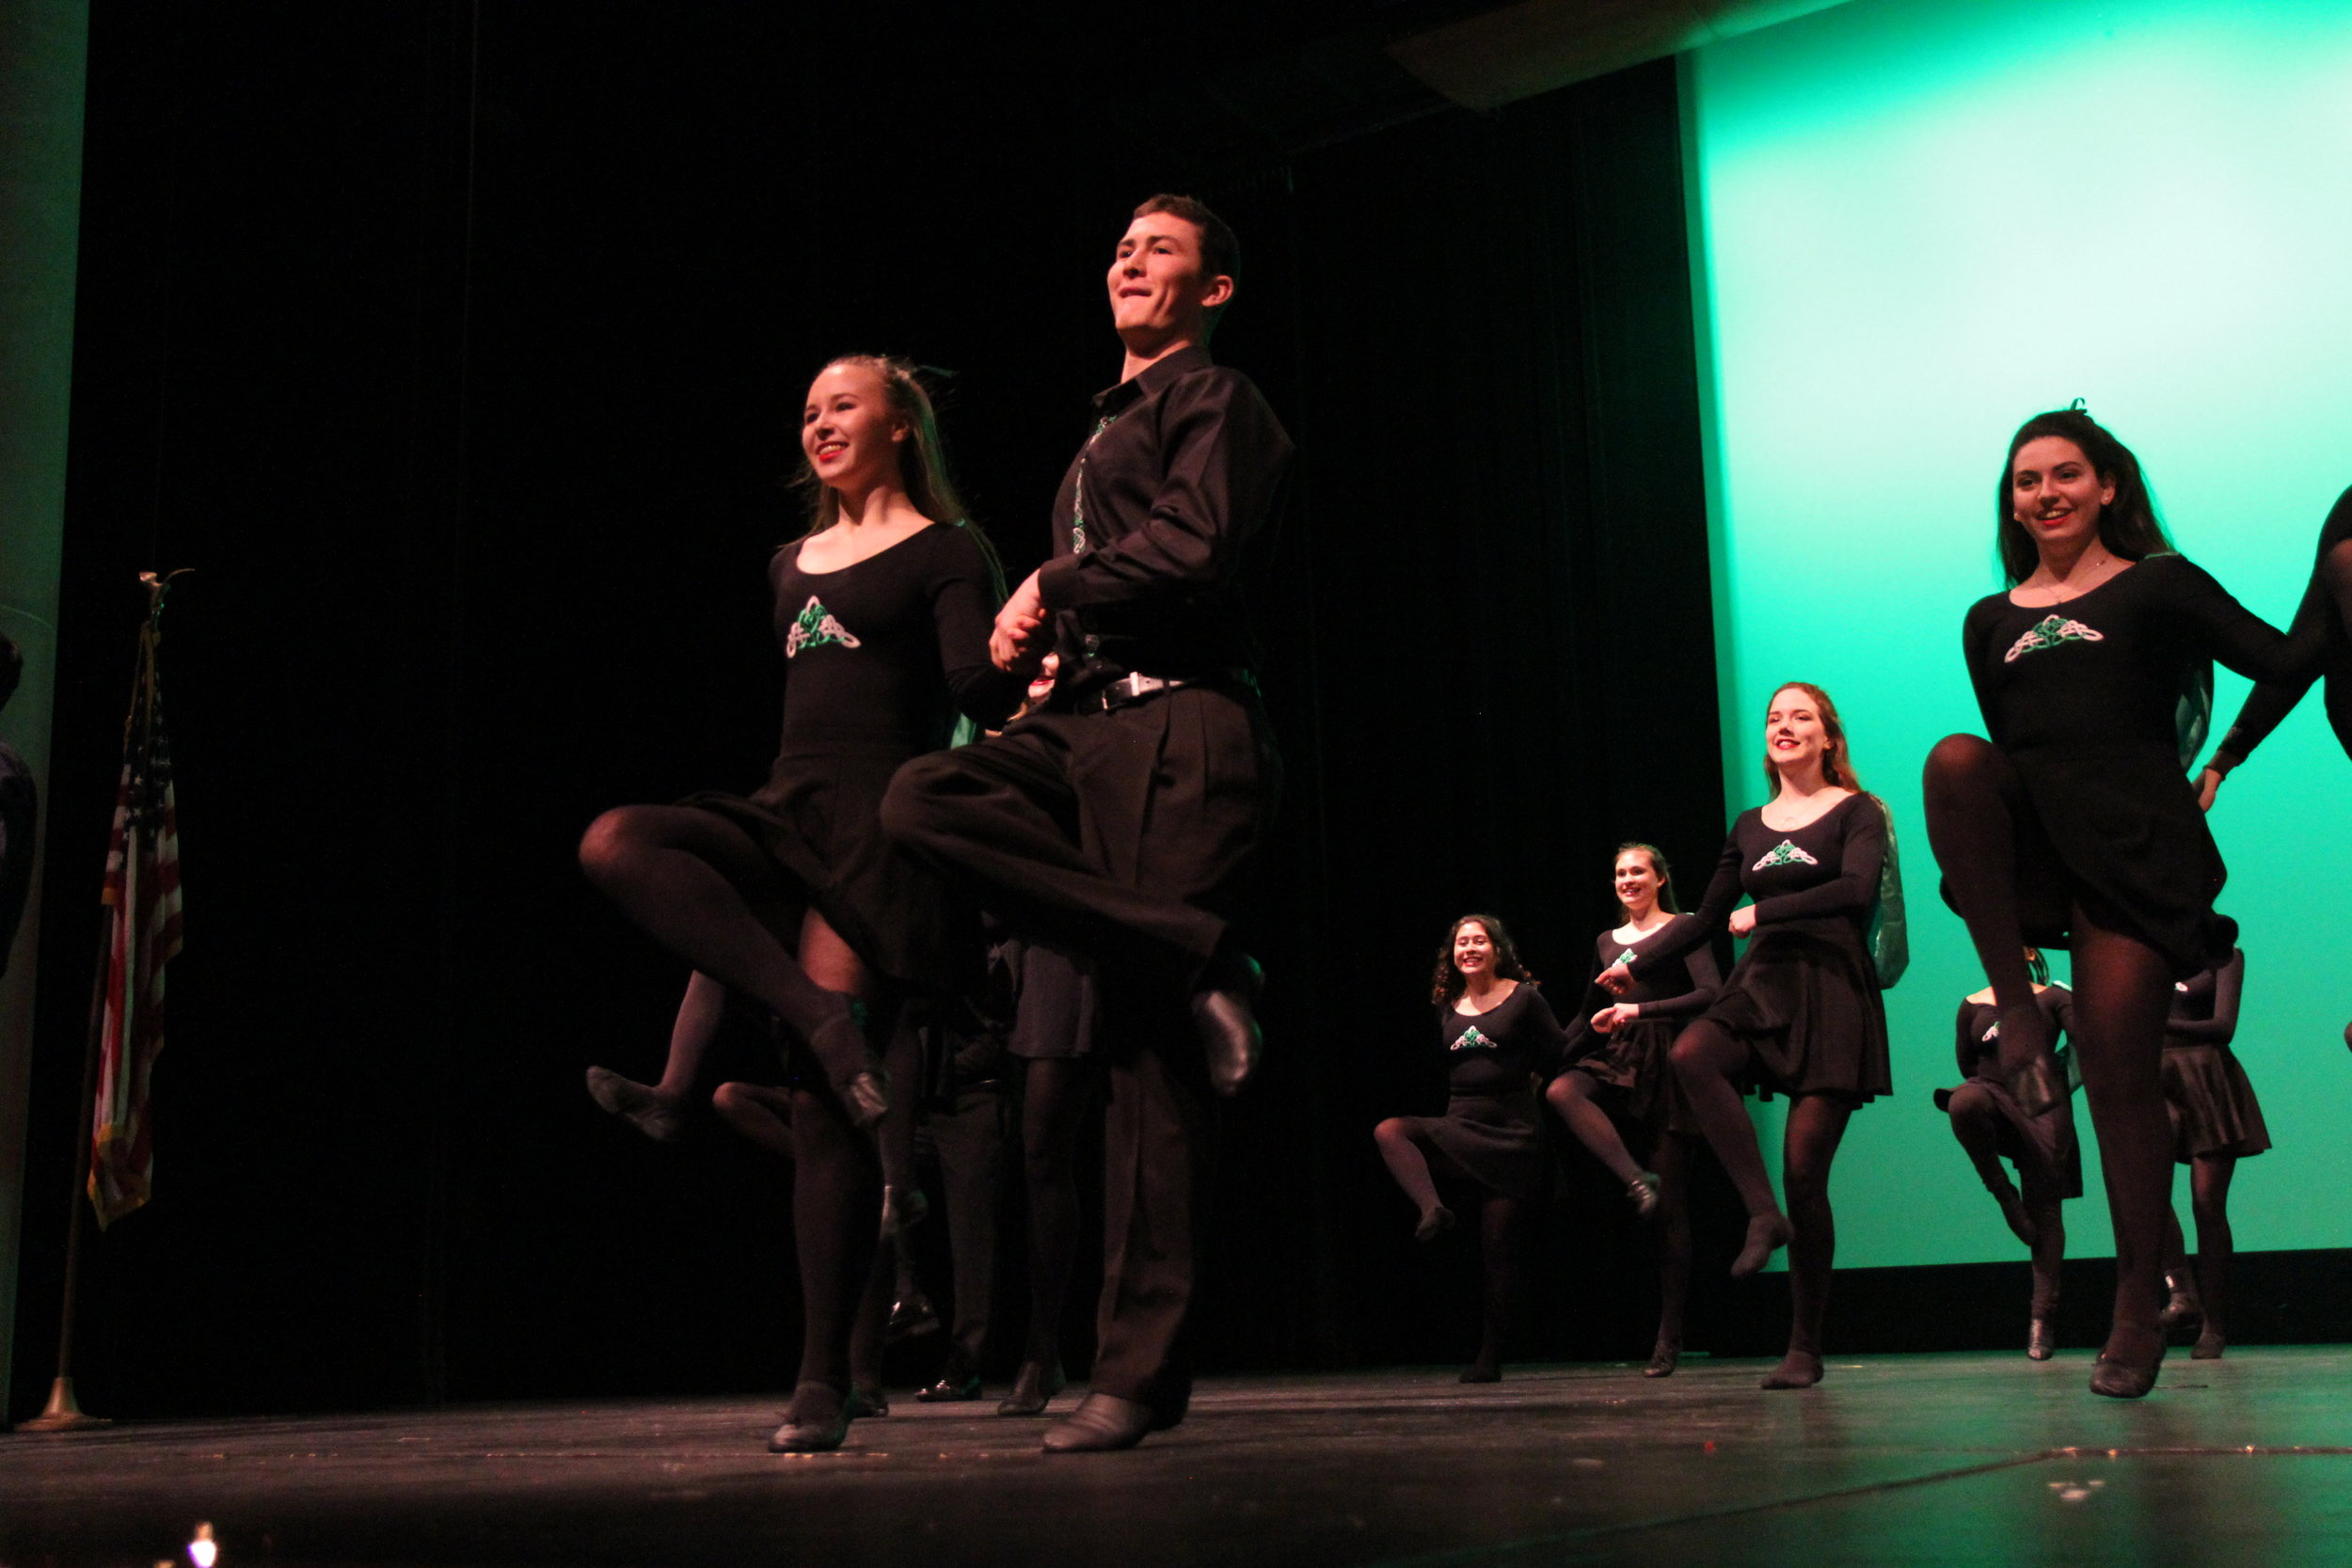 Jack Mullen, Adv. 906, and his partner, kick up a storm as they dance this traditional Irish jig